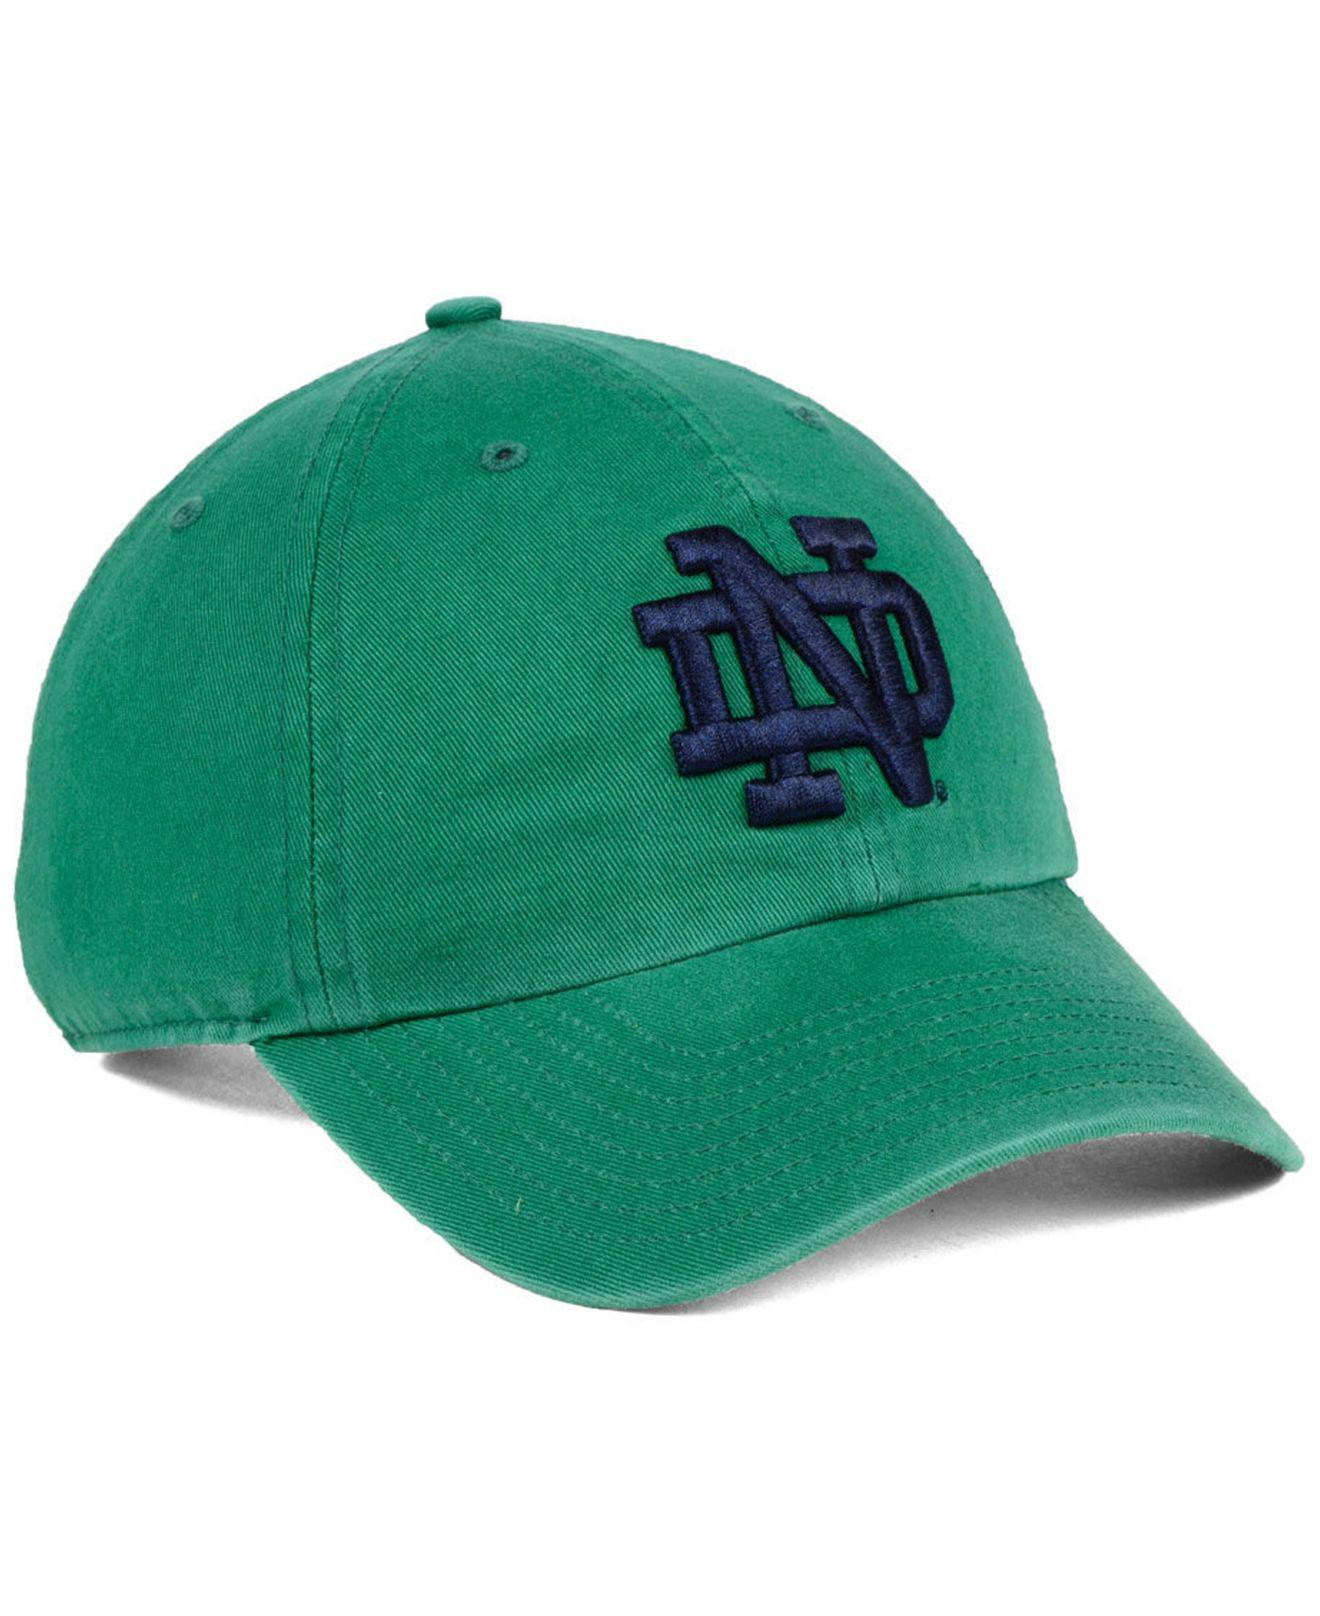 best service 26050 45fa6 ... mvp cap black adjustable baseball cap hip e9d49 8c3a5  50% off lyst 47  brand notre dame fighting irish clean up strapback cap in d5d81